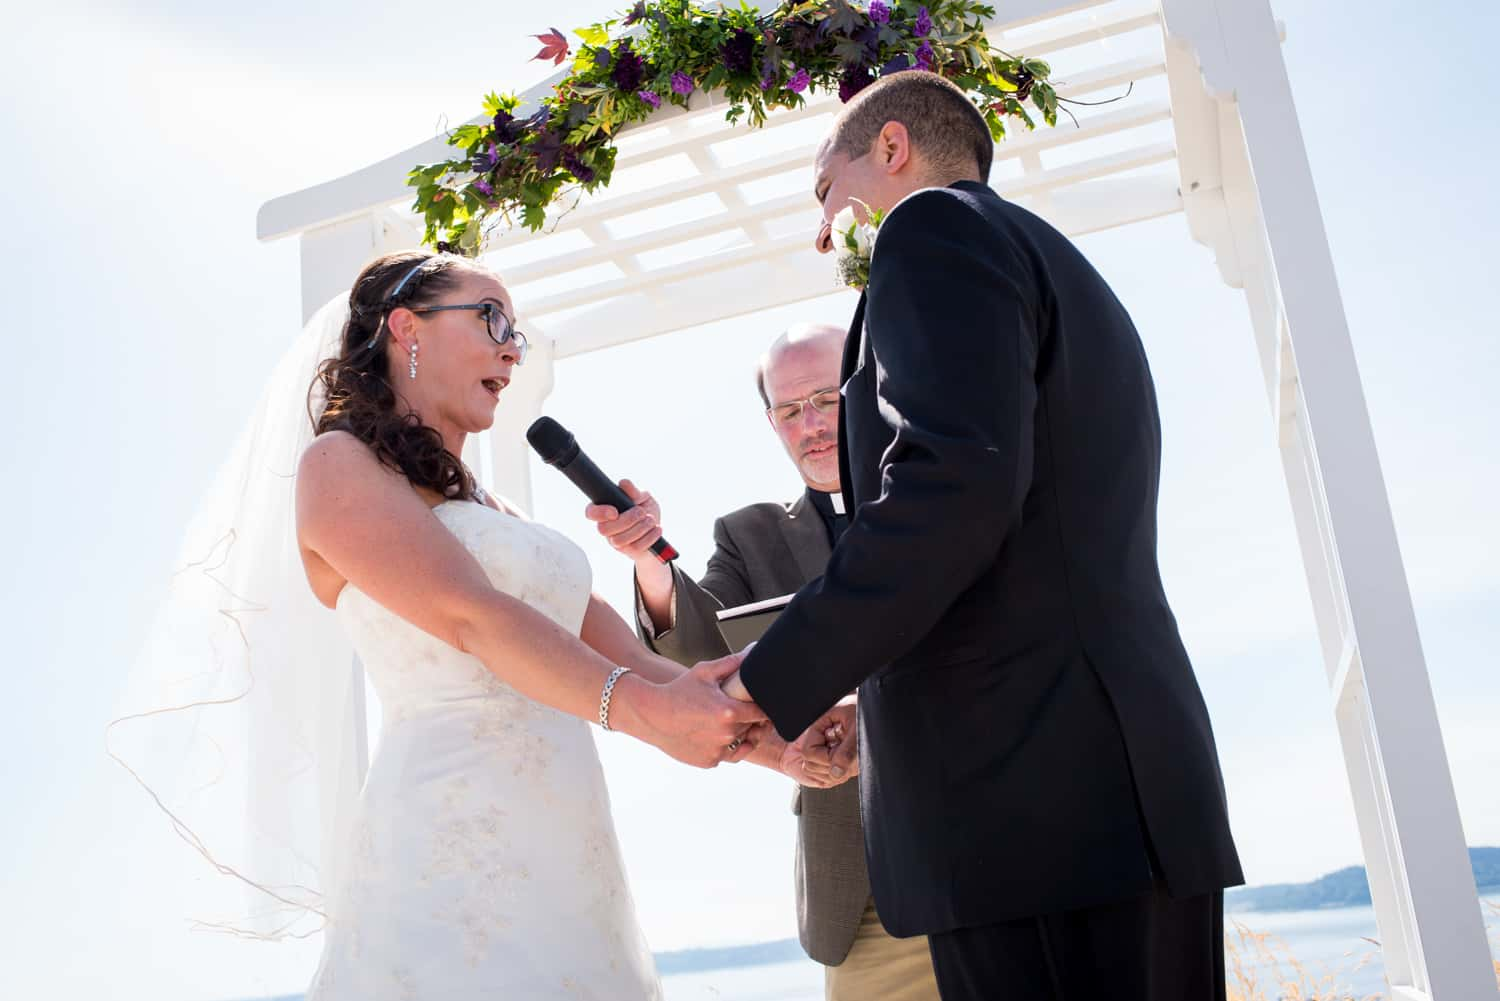 Officiant holds the microphone to the brides face while she recites her vows beneath a white arch with purple flowers.